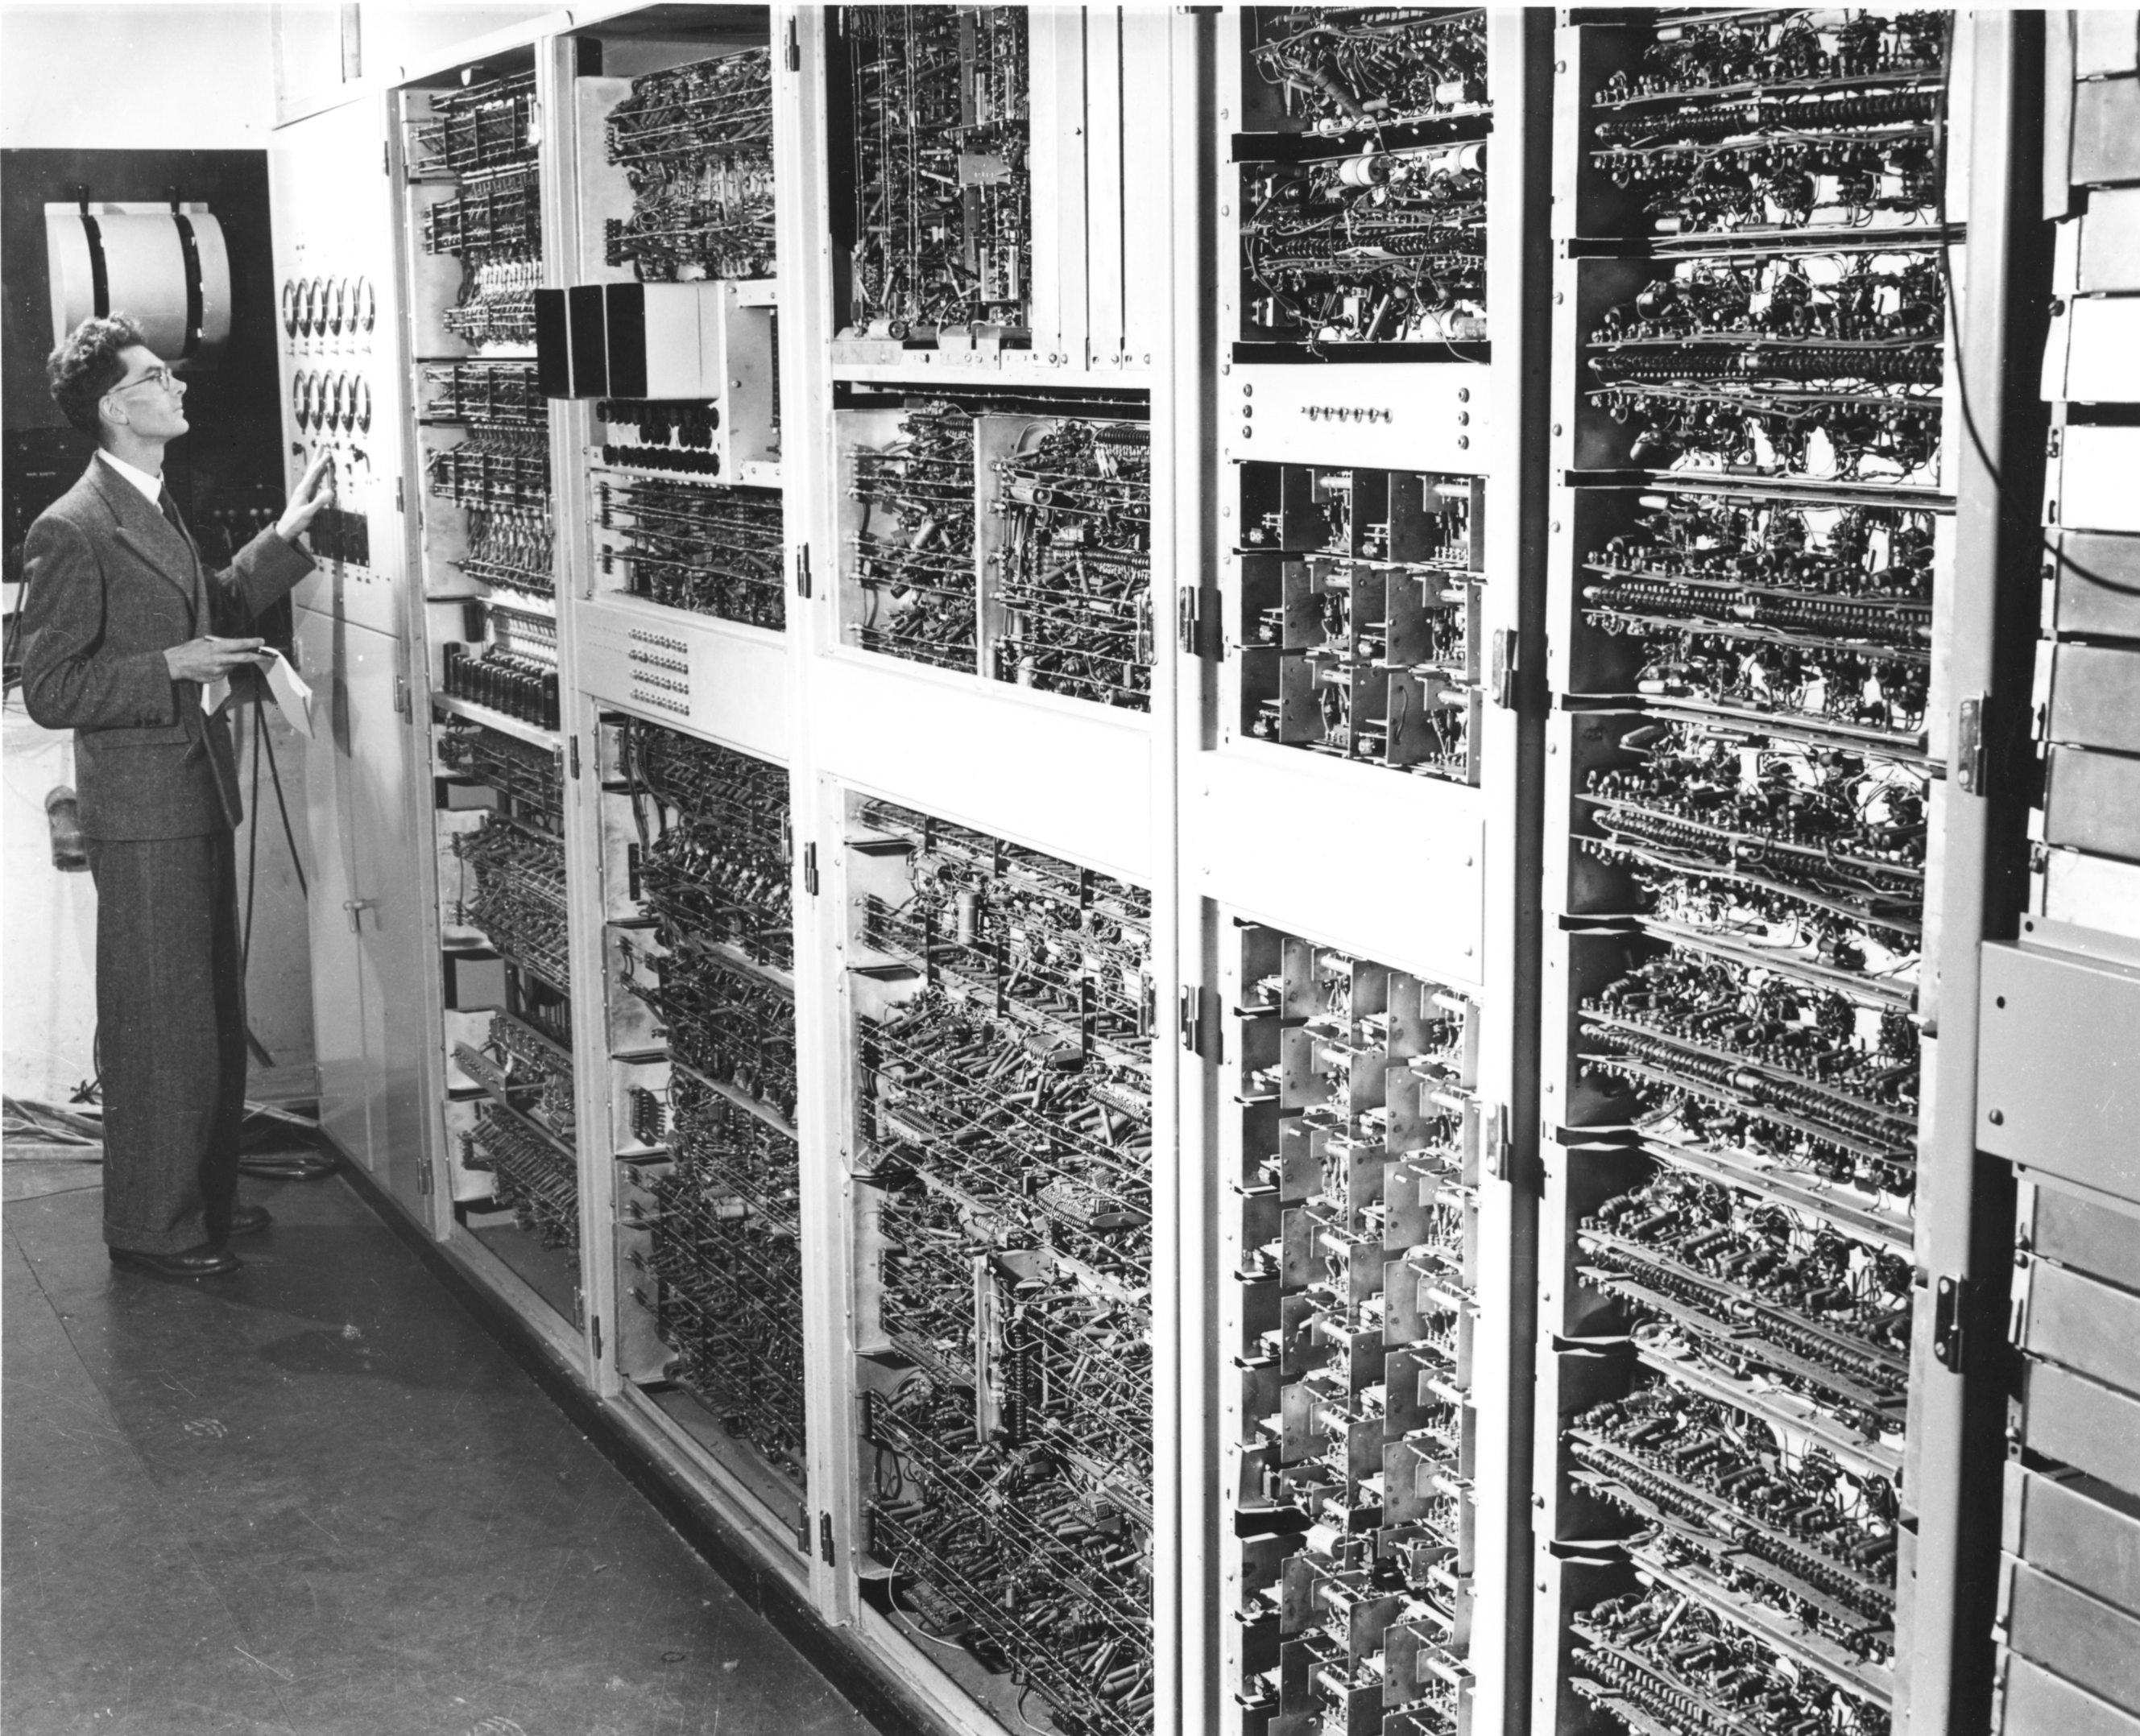 A man standing in front of CSIRAC